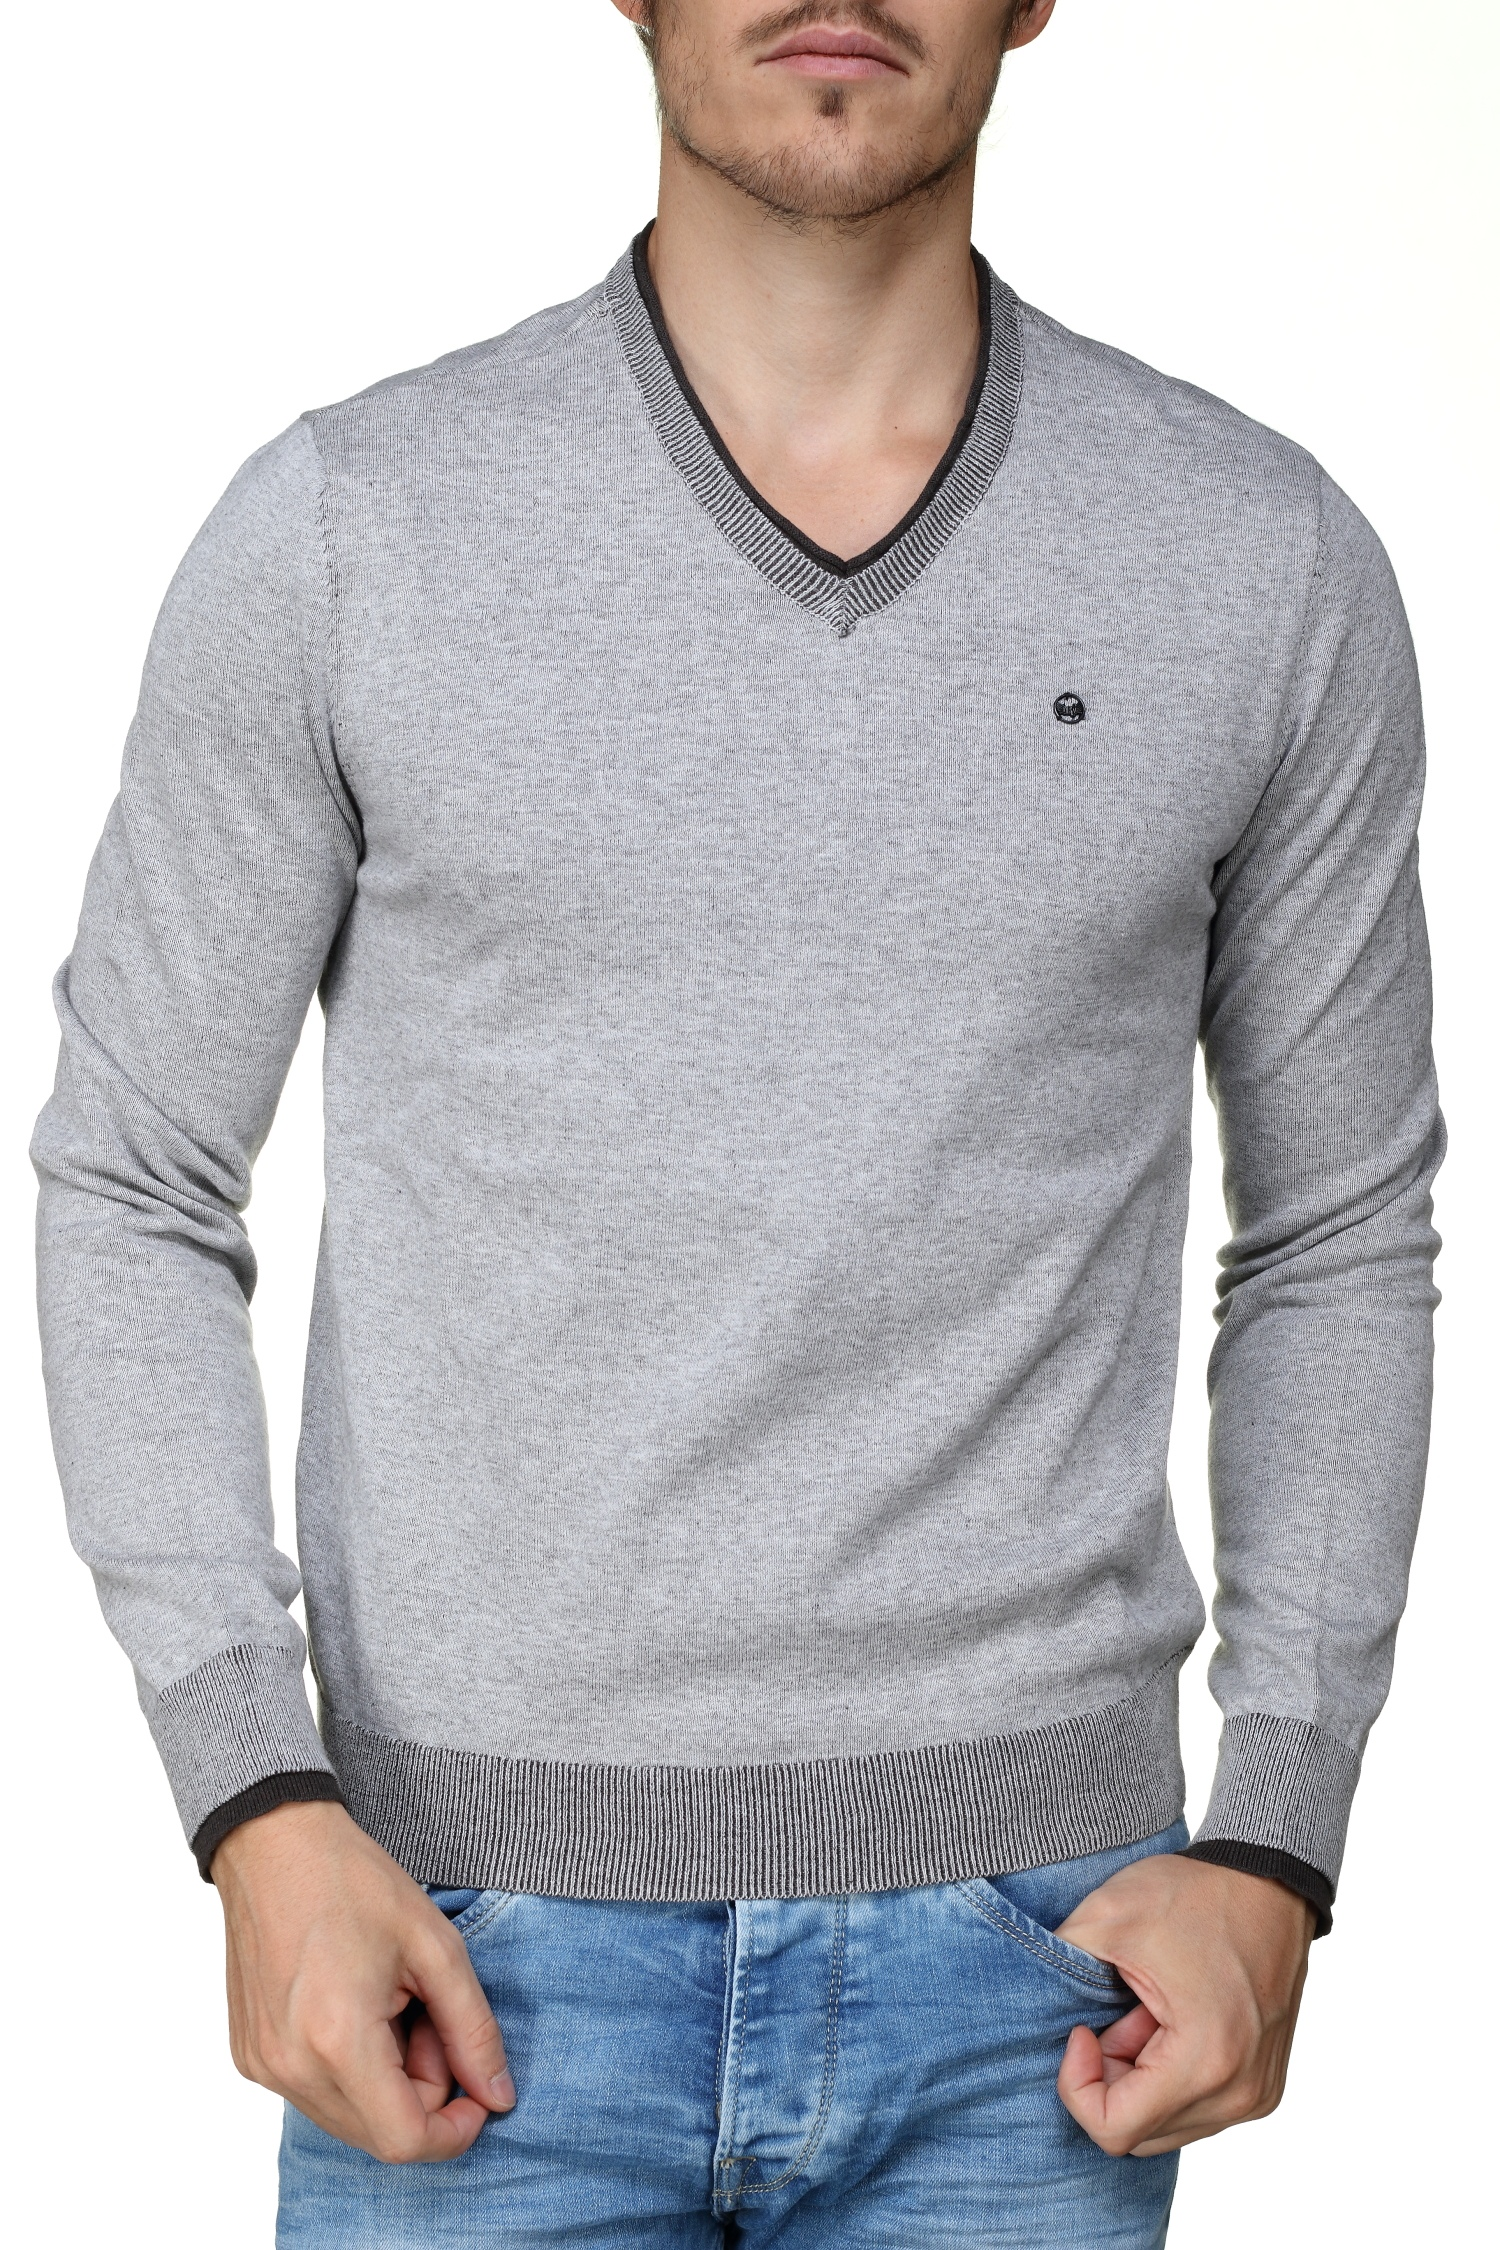 http://www.leadermode.com/155228/kaporal-lustin-medium-grey-chine.jpg